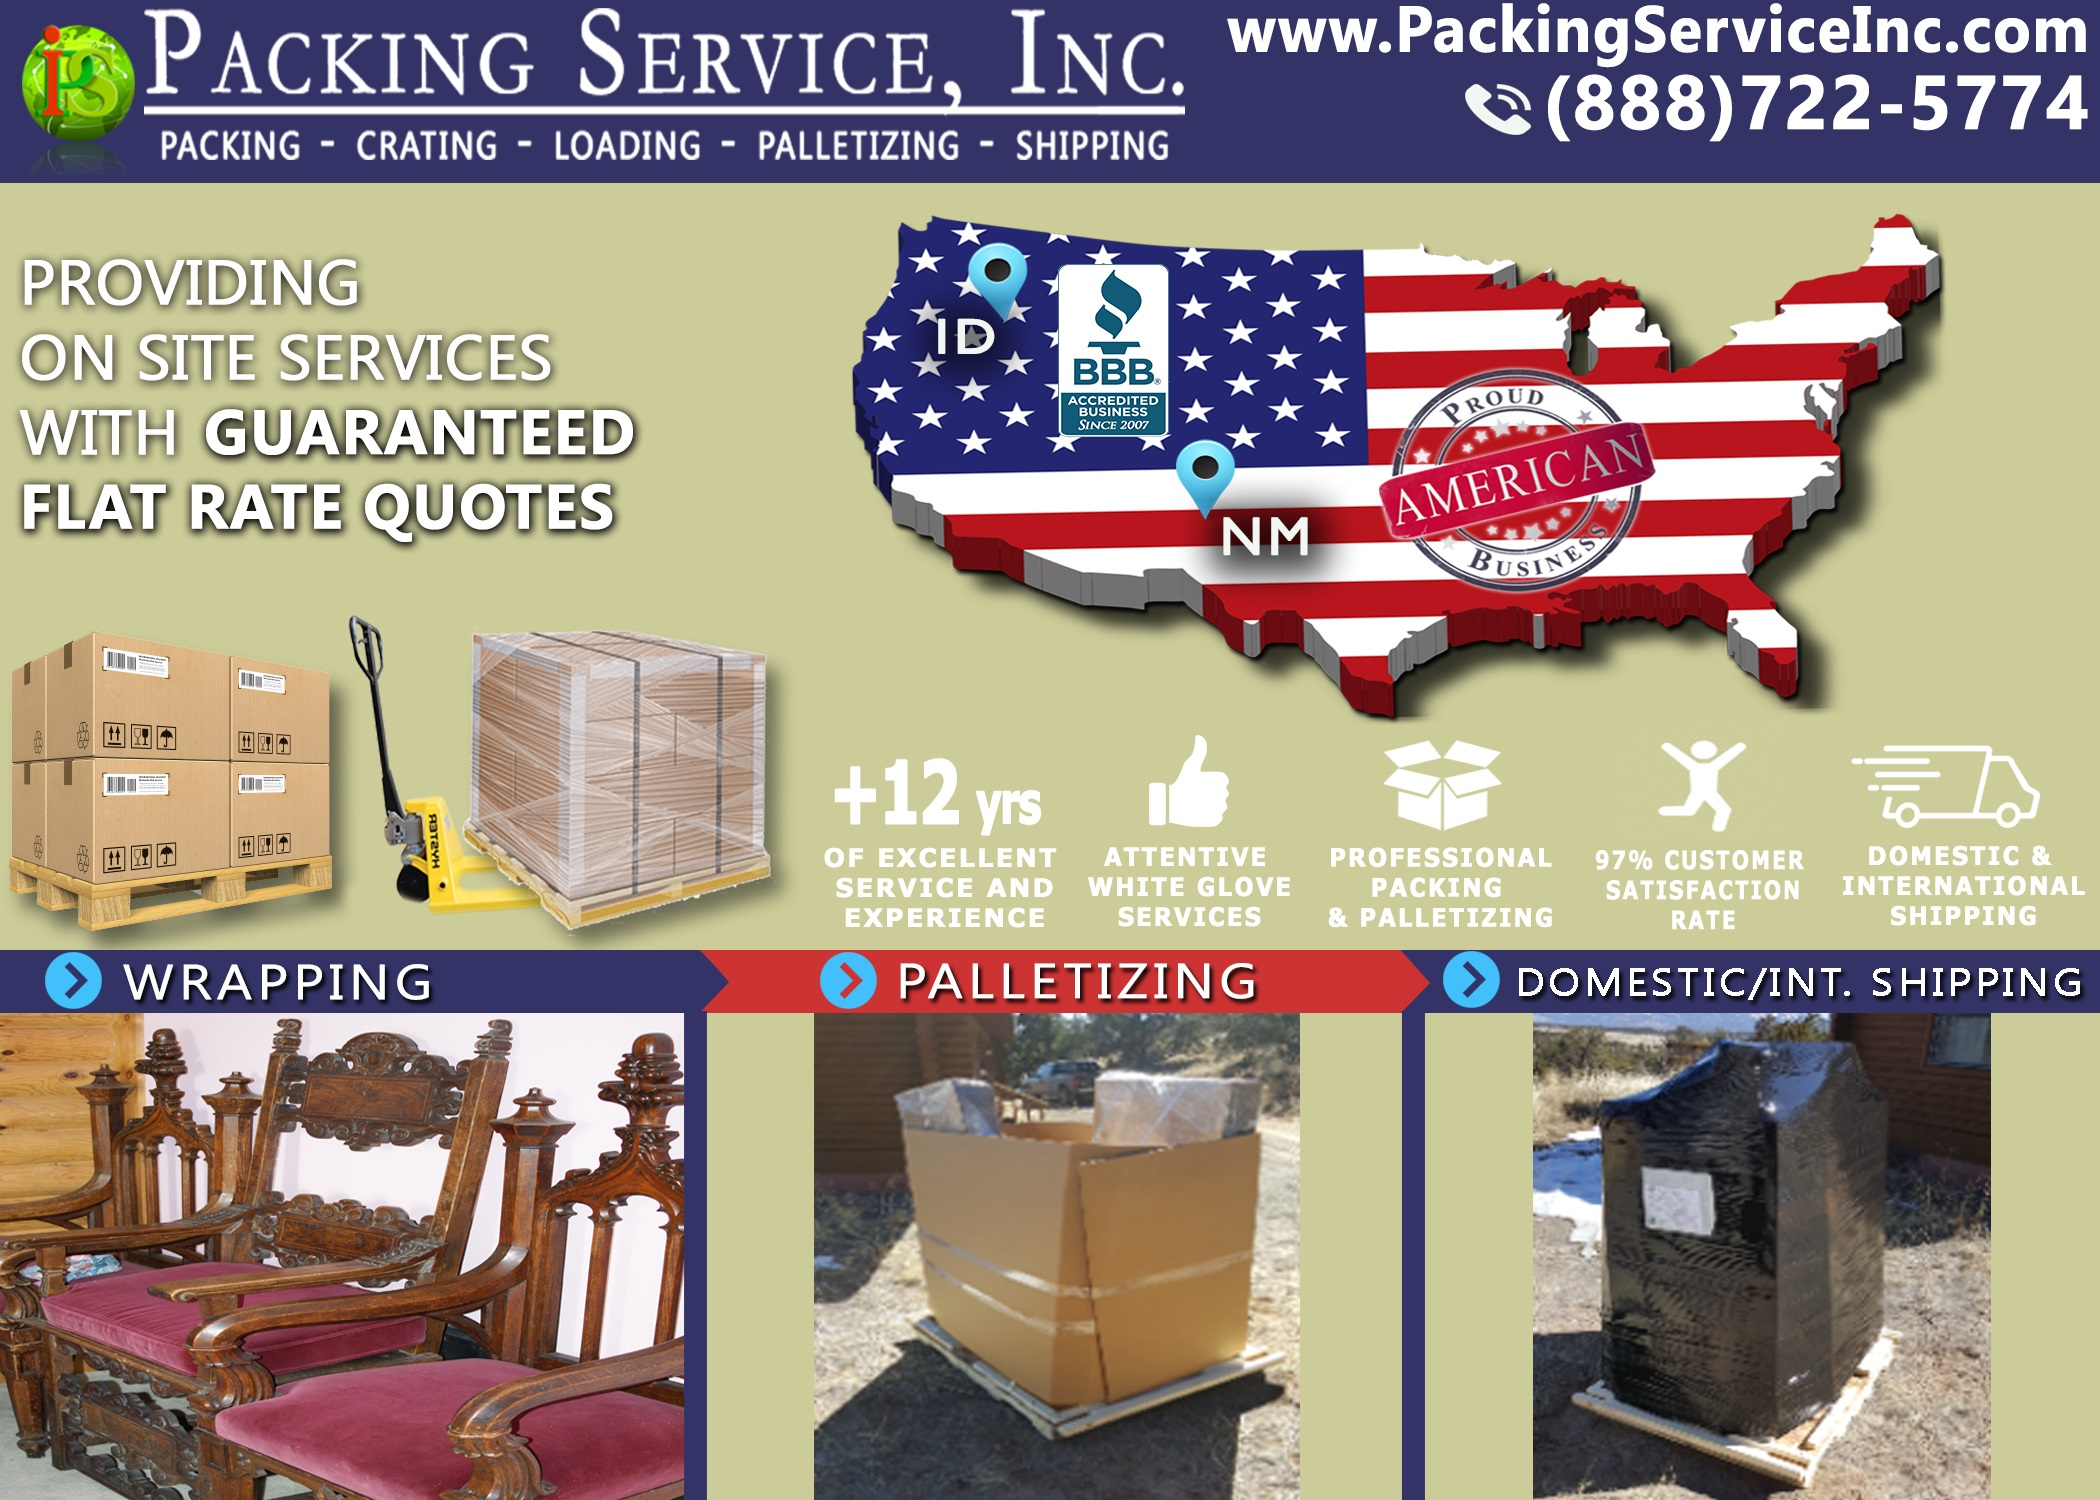 Packing Service, Inc. provides Packing, Wrapping, Loading, Crating, Palletizing, and Shipping services